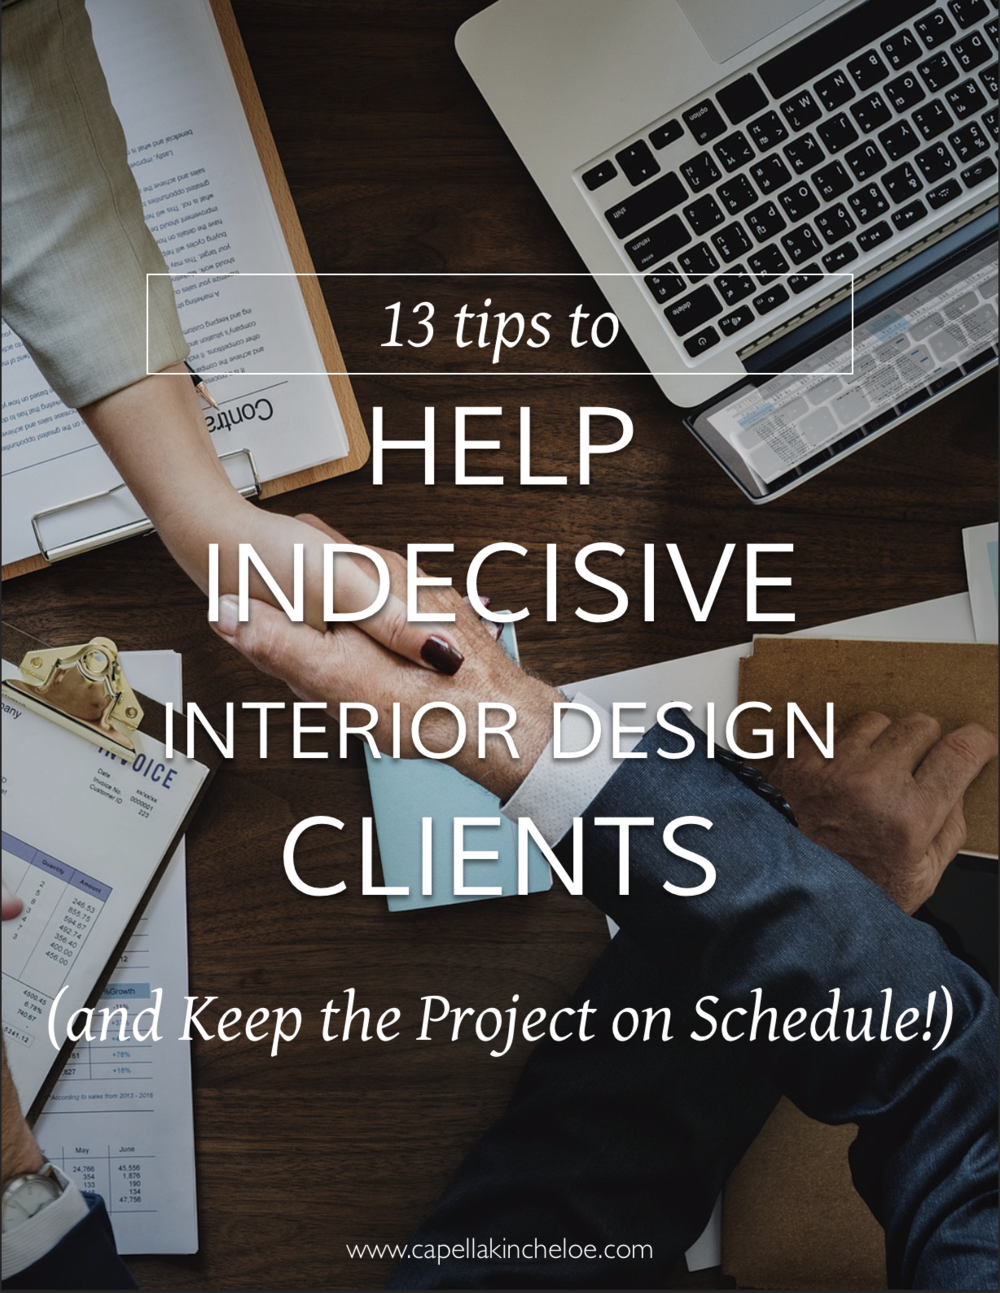 Have a client that keeps changing Their Minds? Try these 13 tips. #interiordesignbusiness #businessOFDESIGN #CKTRADESECRETS #INTERIORDESIGNCLIENTS